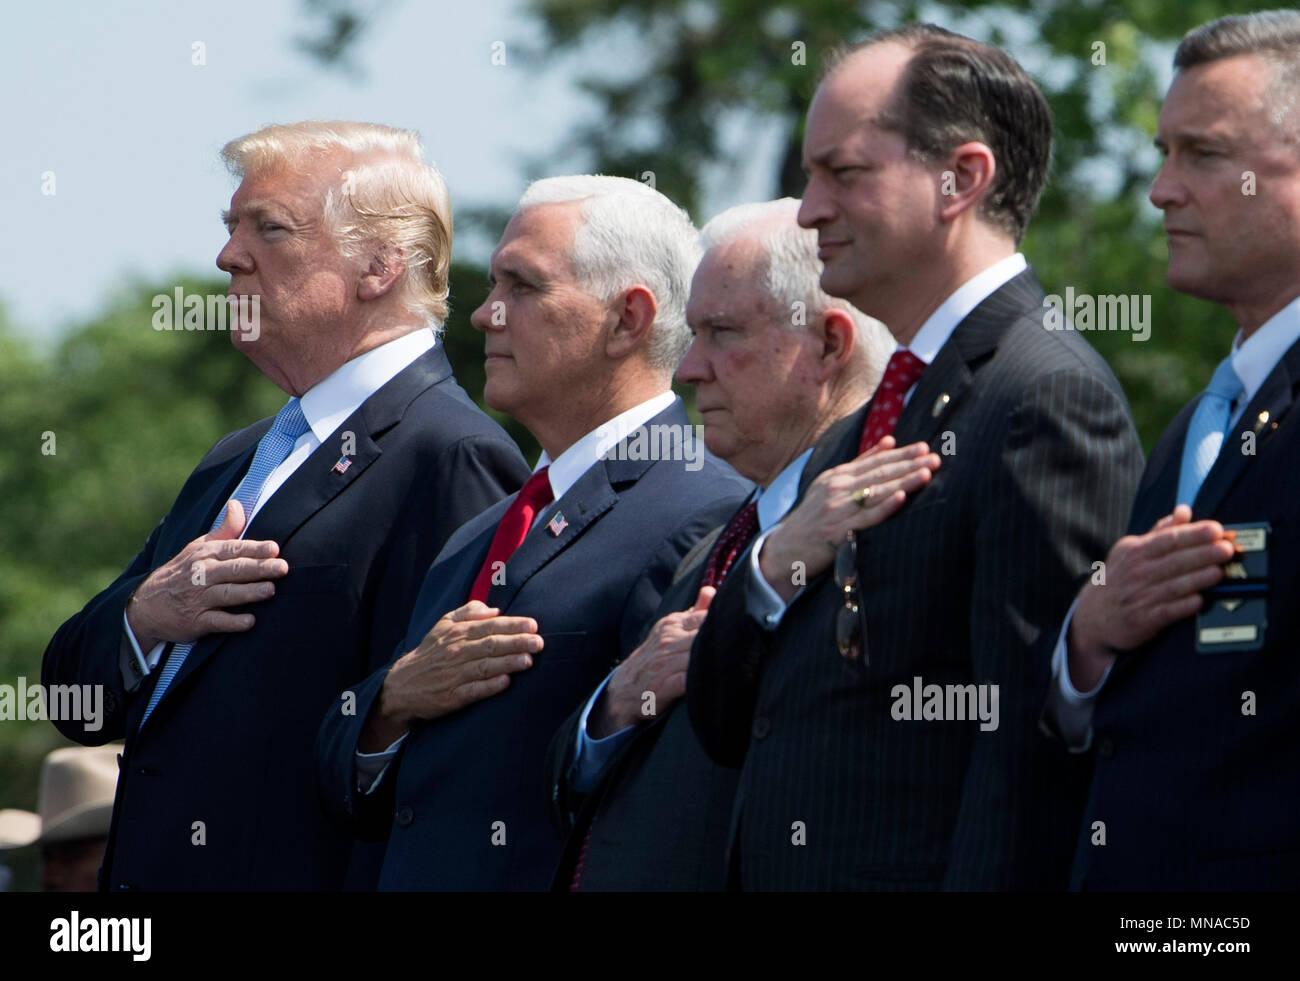 President Donald Trump (L), Vice President Mike Pence (2nd-L) Attorney General Jeff Sessions (3rd-L) and Health and Human Services Secretary Alex Azar stand for the national anthem during the 37th Annual National Peace Officers' Memorial Service at the U.S. Capitol Building on May 15, 2018 in Washington, D.C.  Credit: Kevin Dietsch / Pool via CNP | usage worldwide - Stock Image